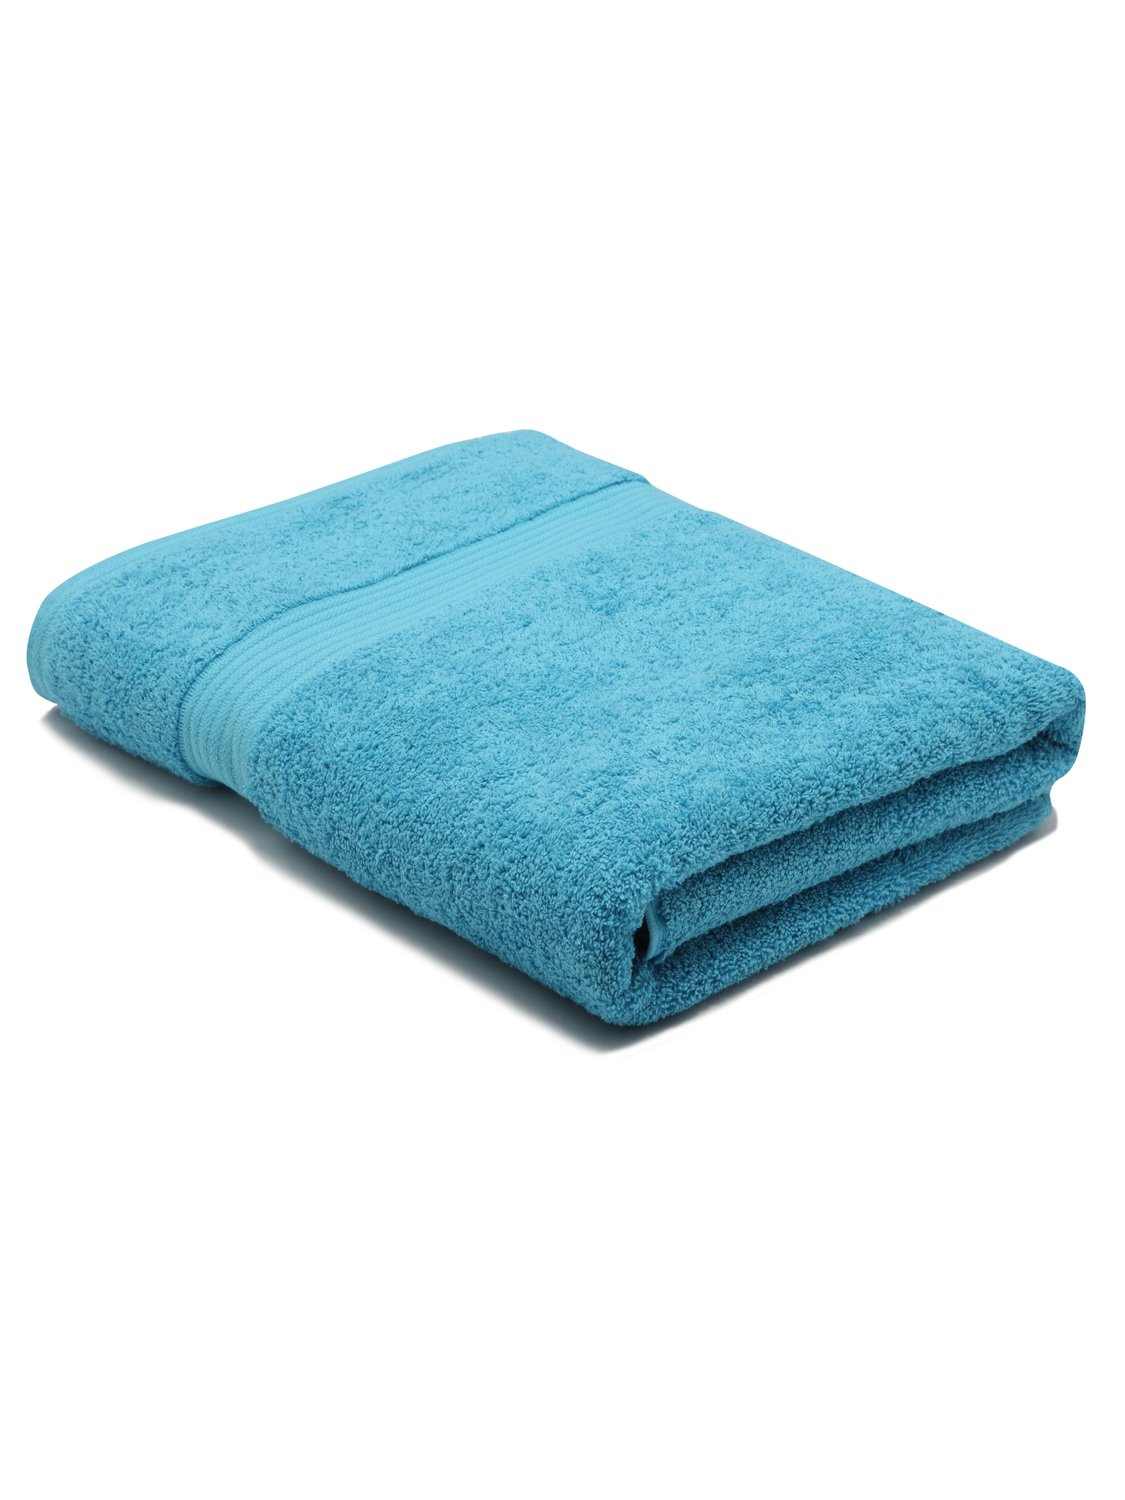 100% Combed Cotton 580Gsm Luxury Soft And Absorbent Bath Sheet  - Teal